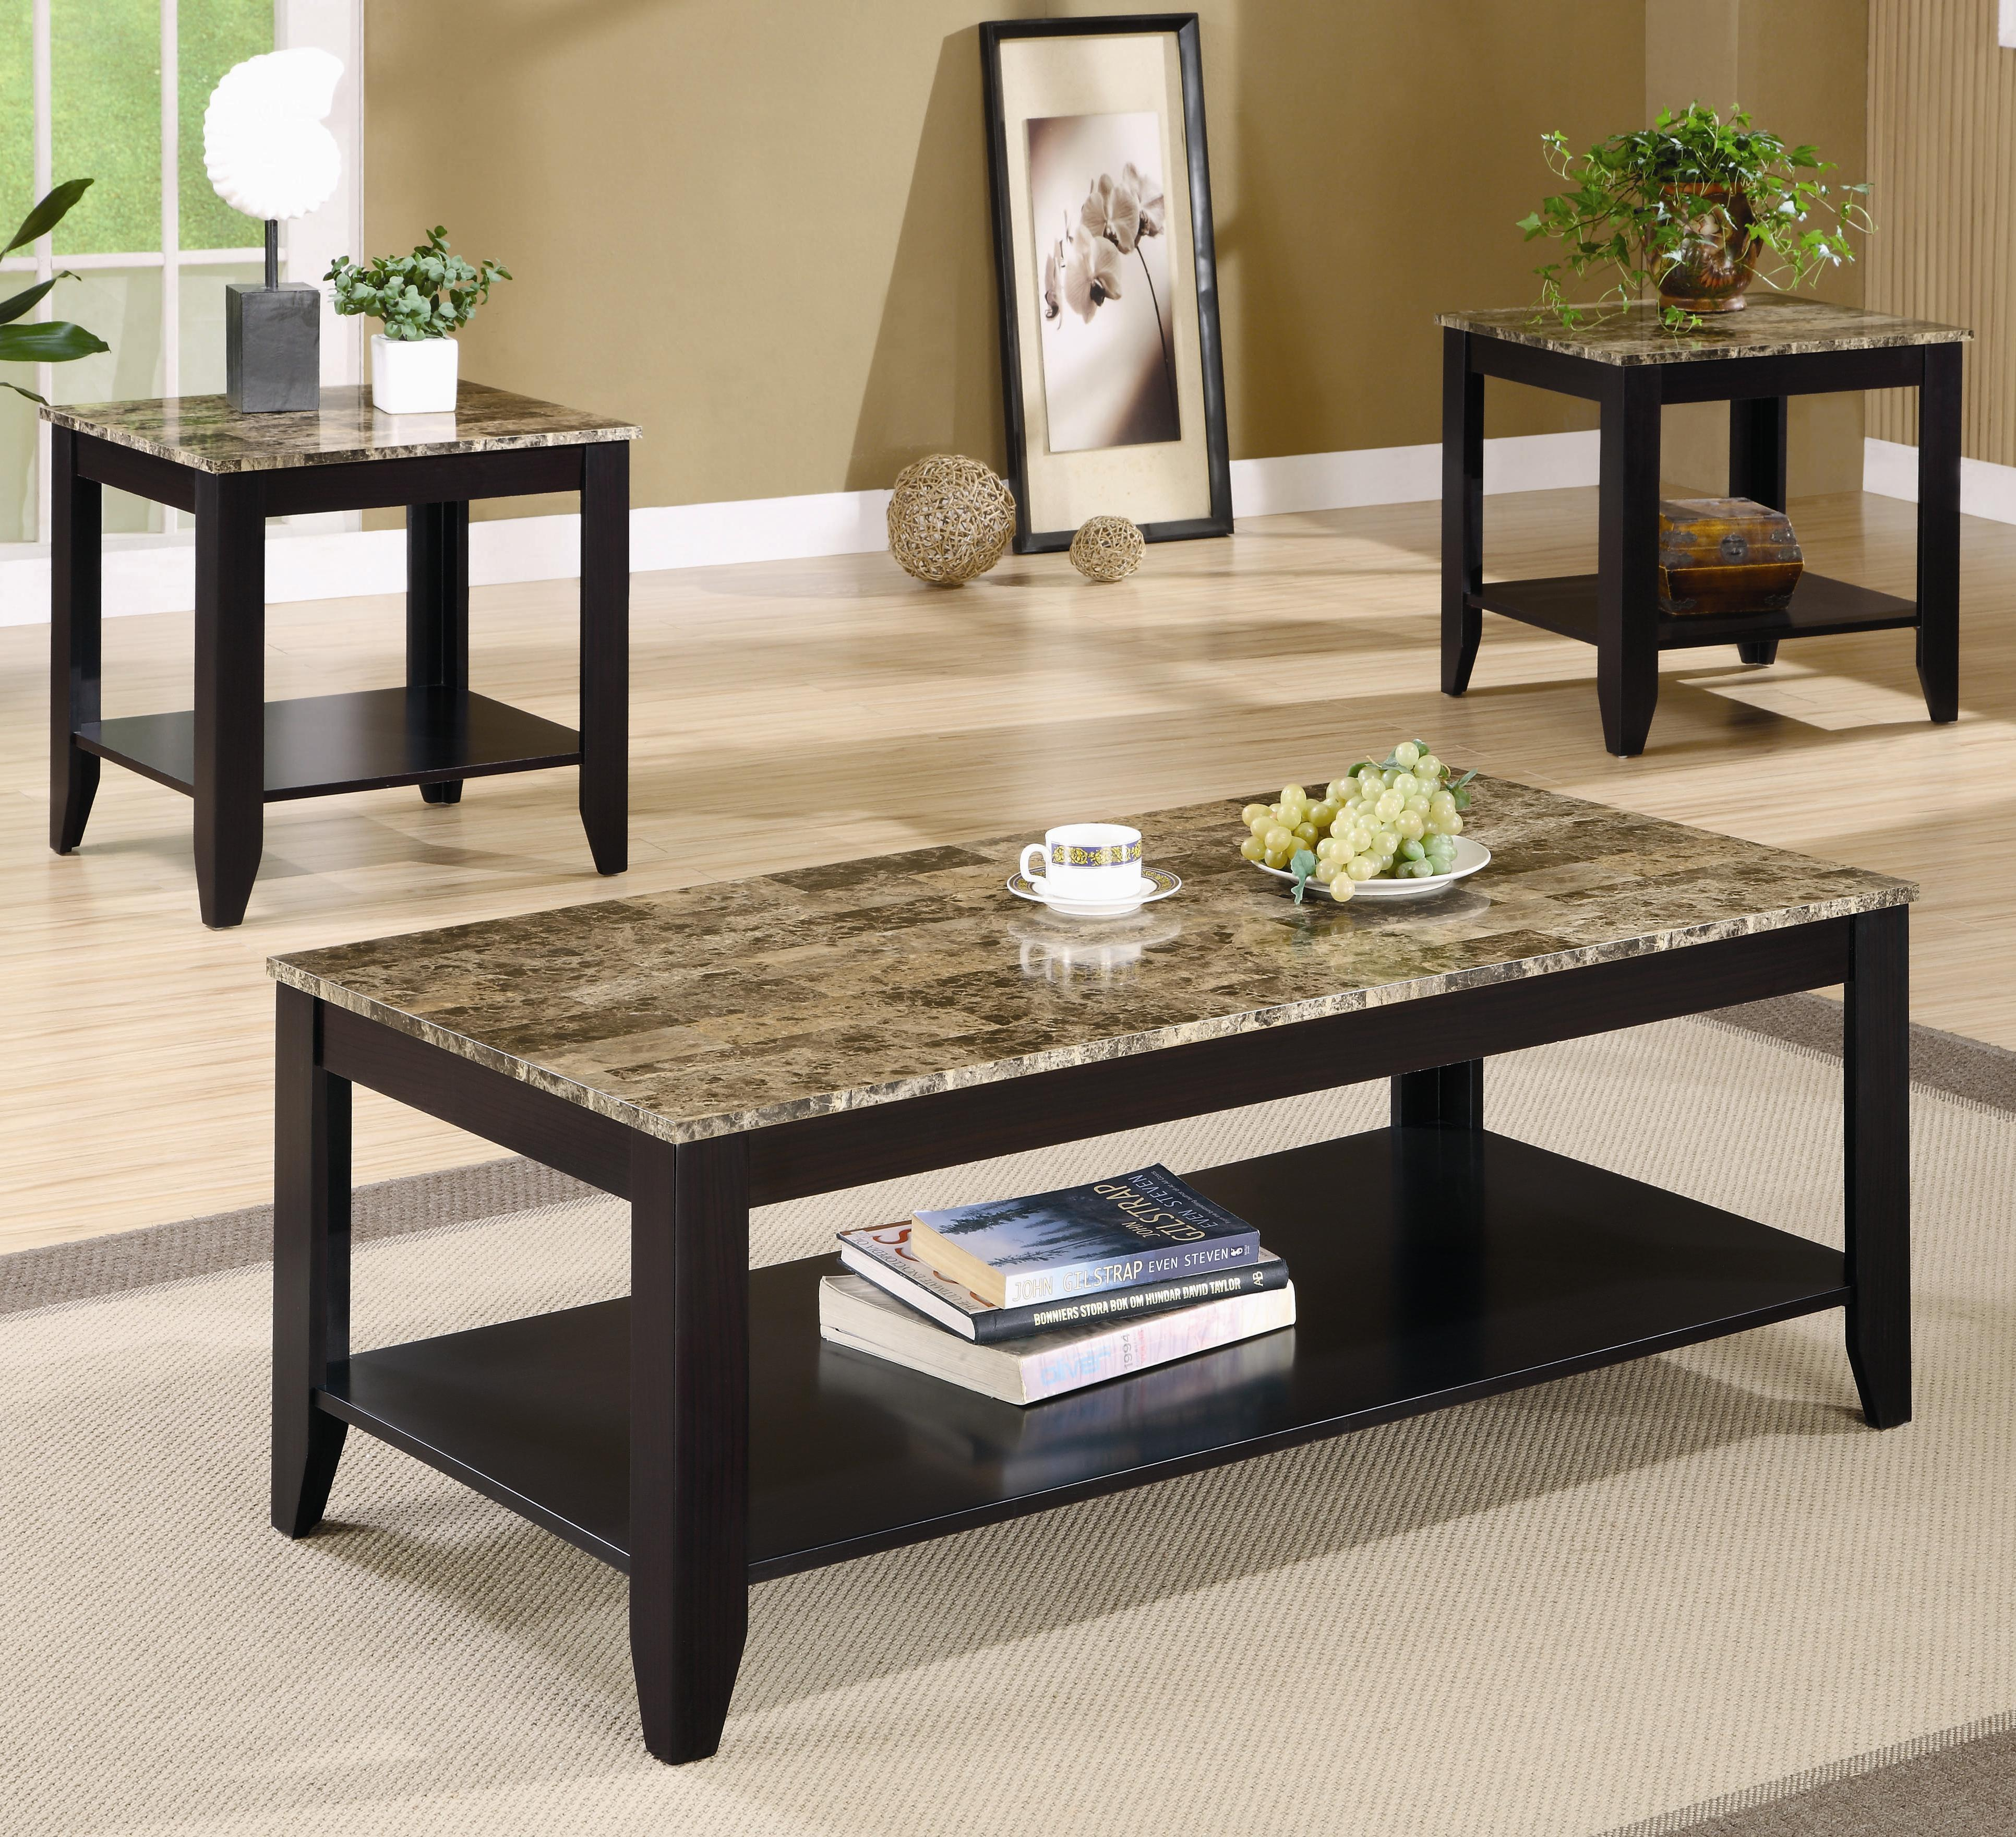 Coaster Occasional Table Sets 3 Piece Table Set - Item Number: 700155